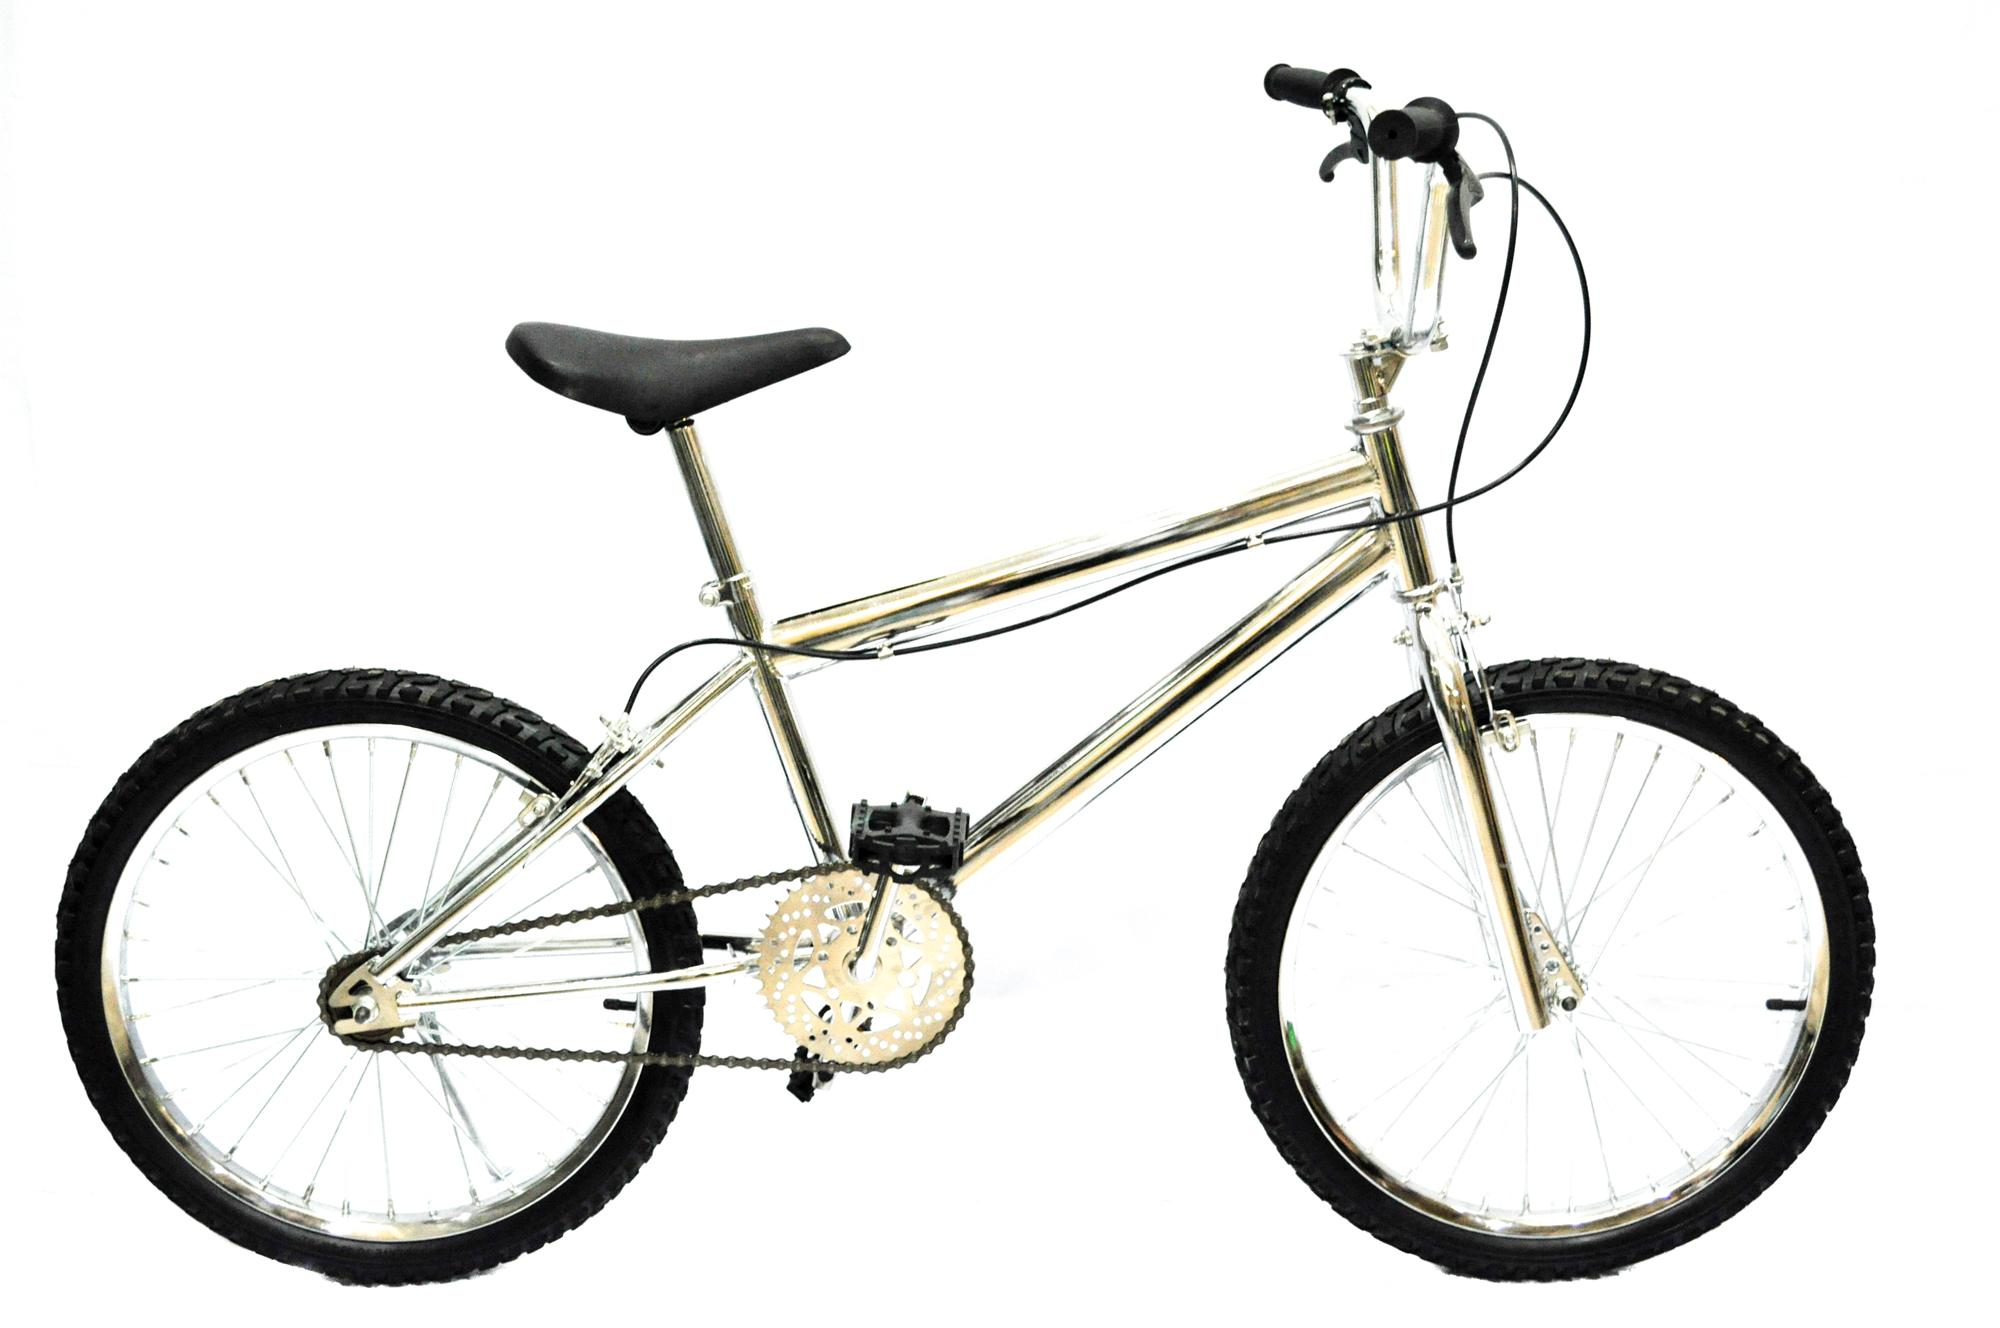 Bicycle BMX 20 CHROME PLATED WITH FREE TIRE PATCH AND GIYO PUMP 45